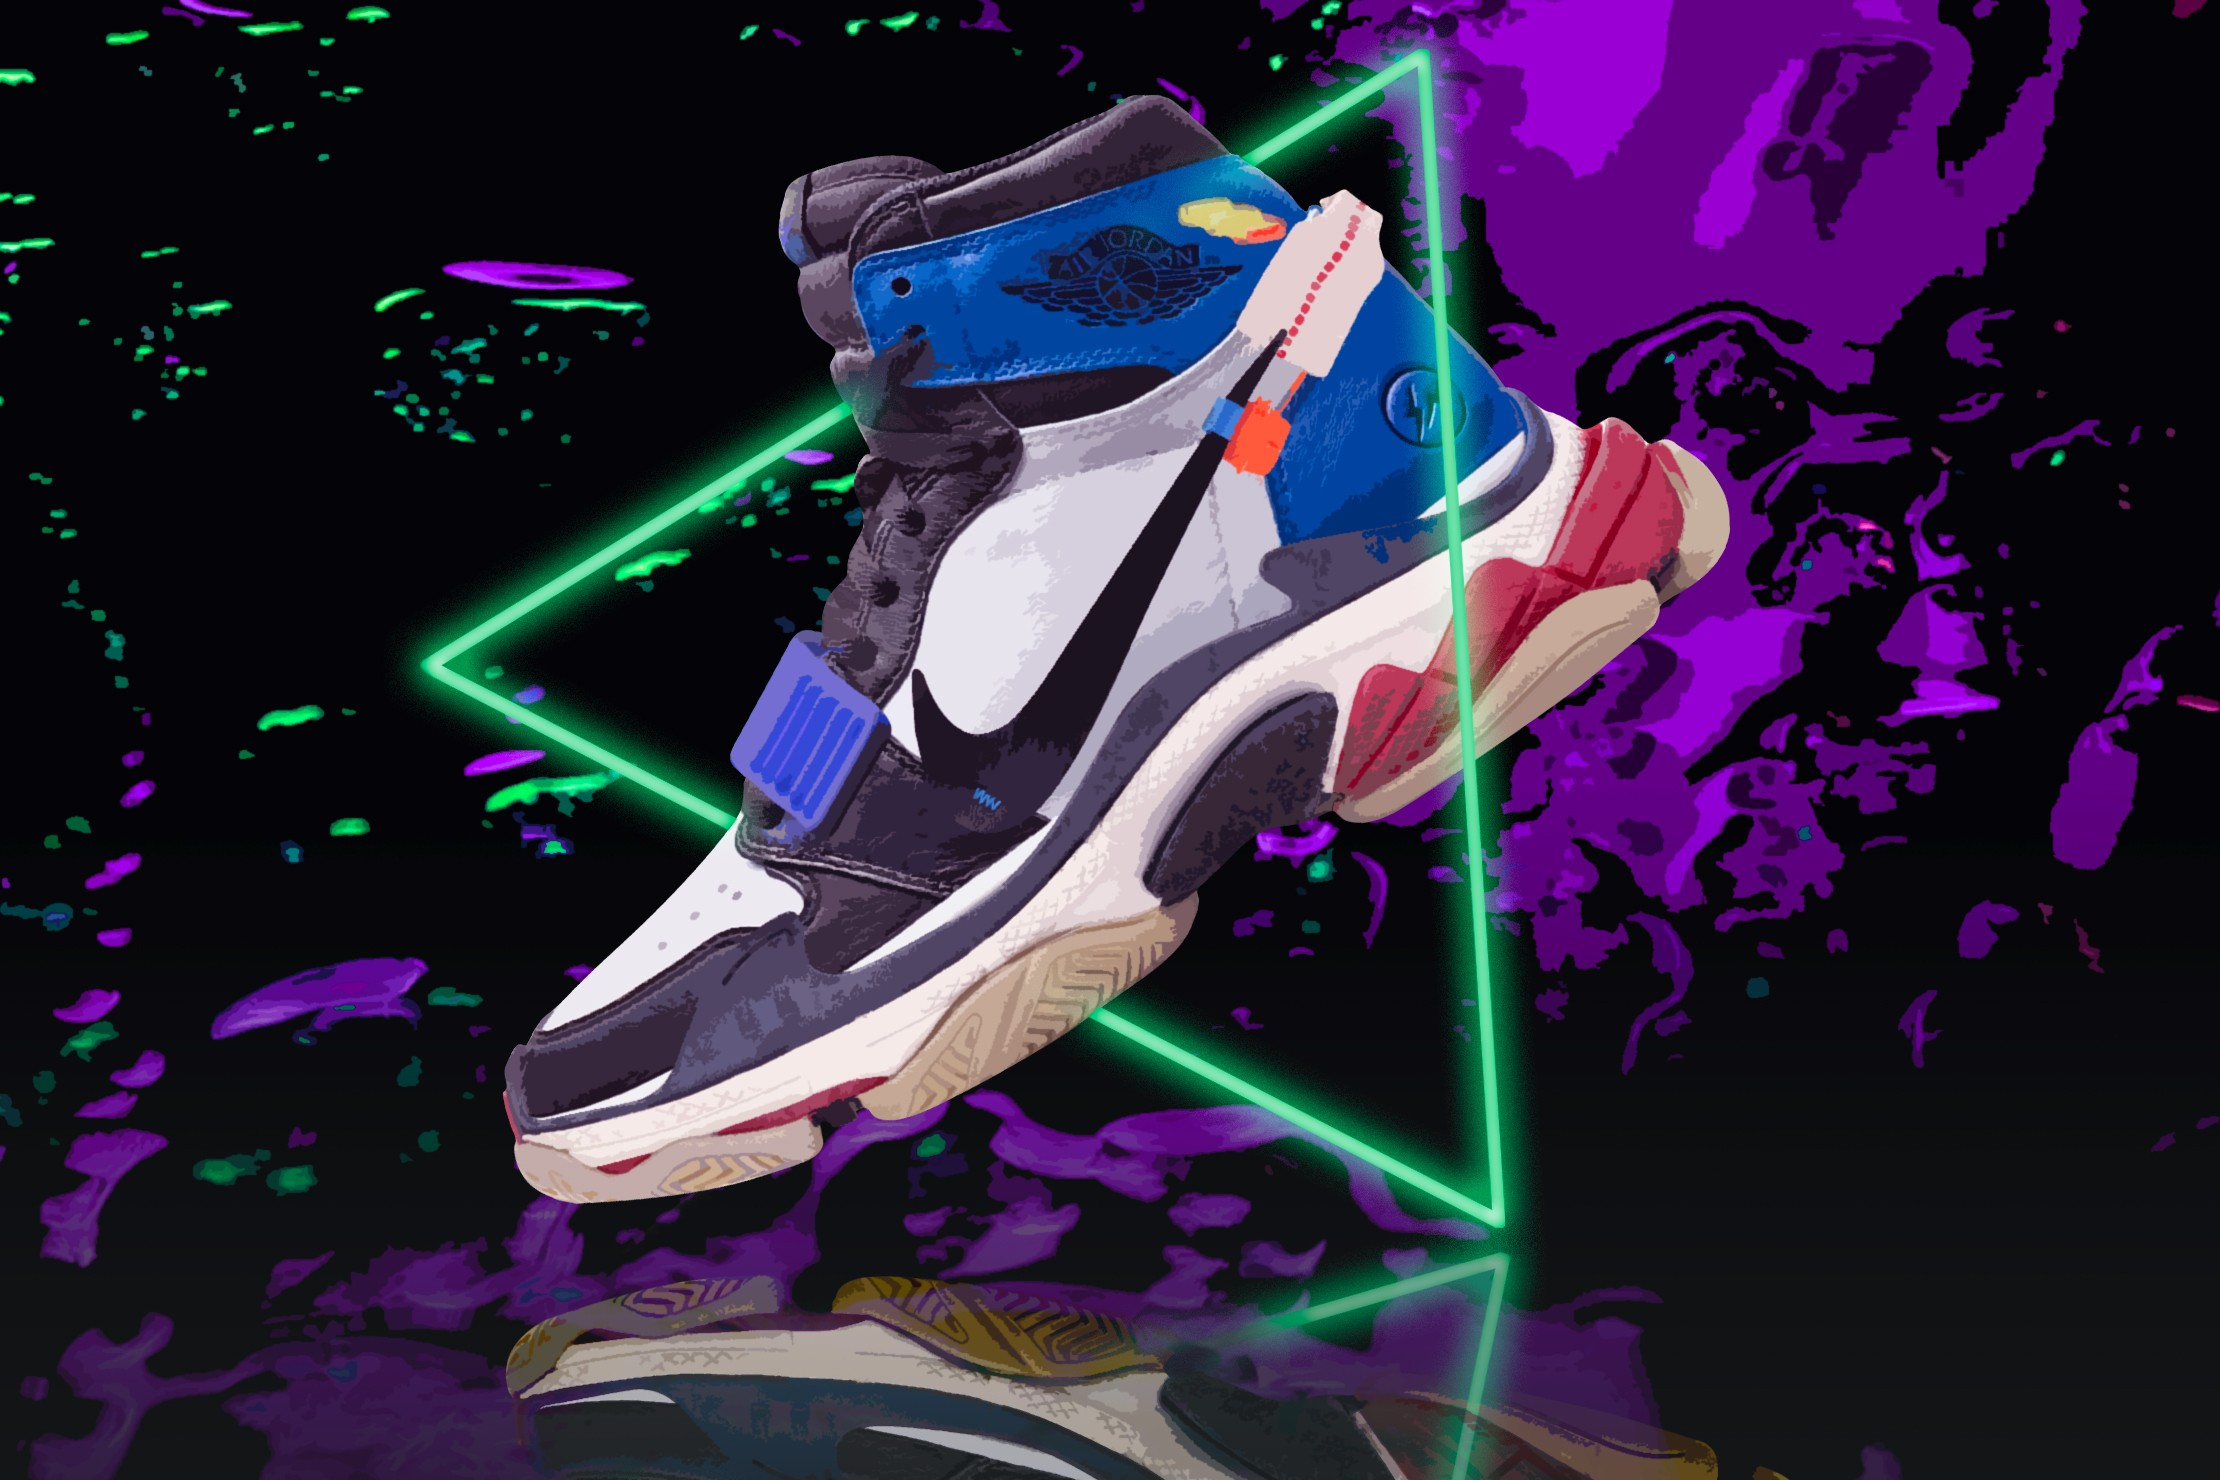 Most Important \u0026 Best Sneakers of the 2010s Decade